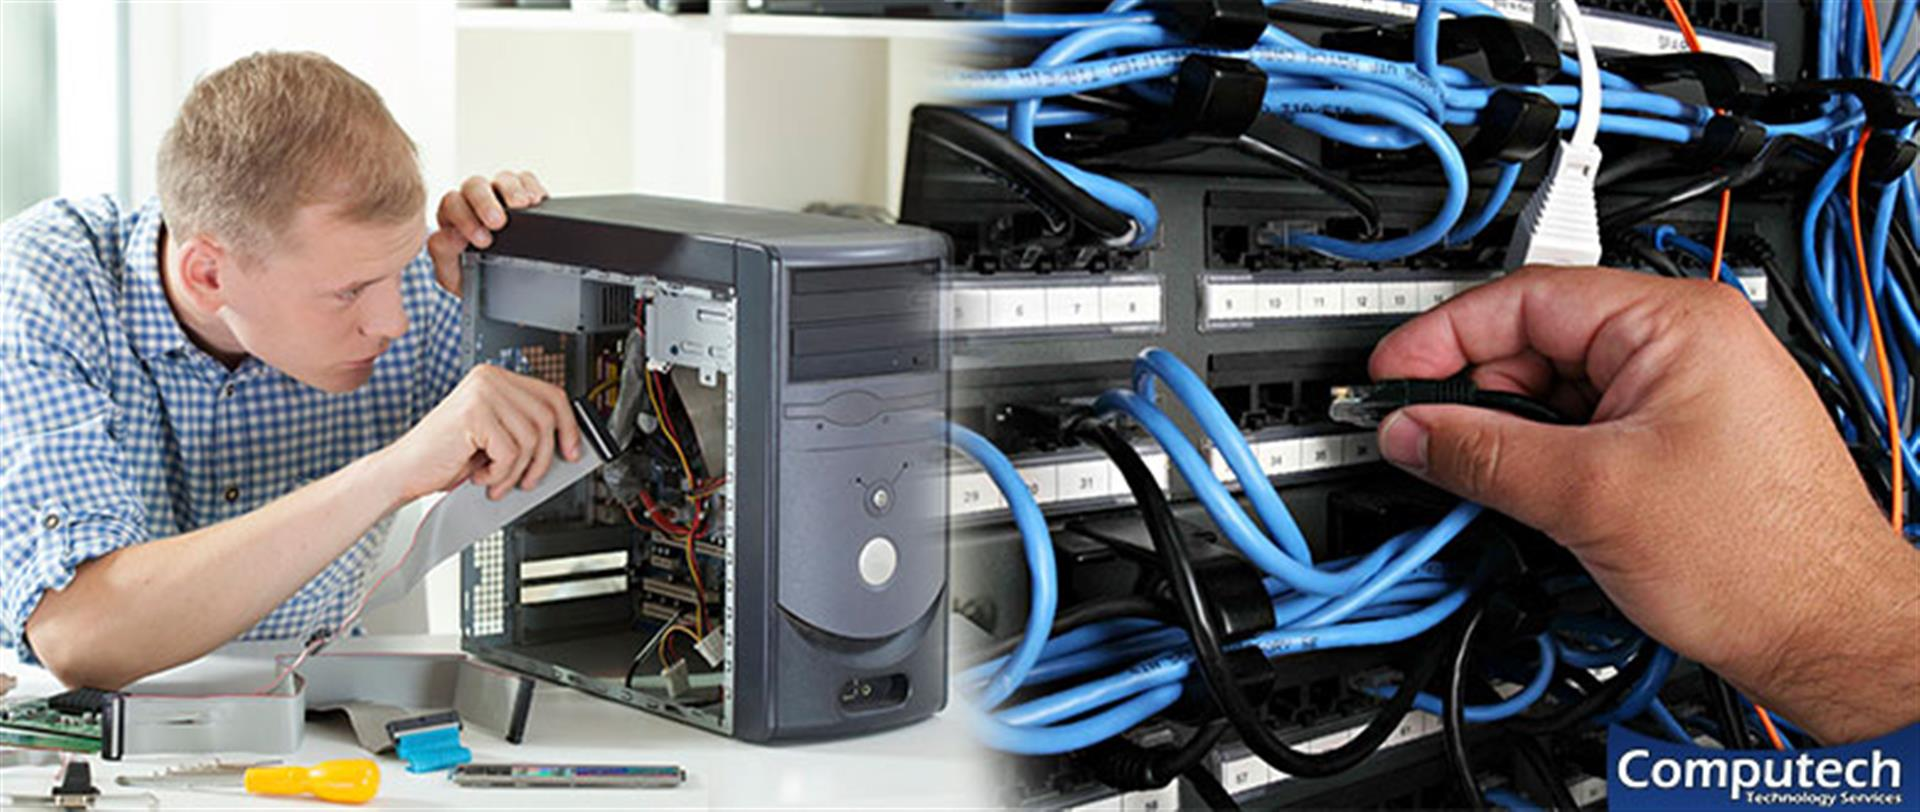 Sahuarita Arizona Onsite Computer PC & Printer Repairs, Networking, Voice and Broadband Data Low Voltage Cabling Solutions